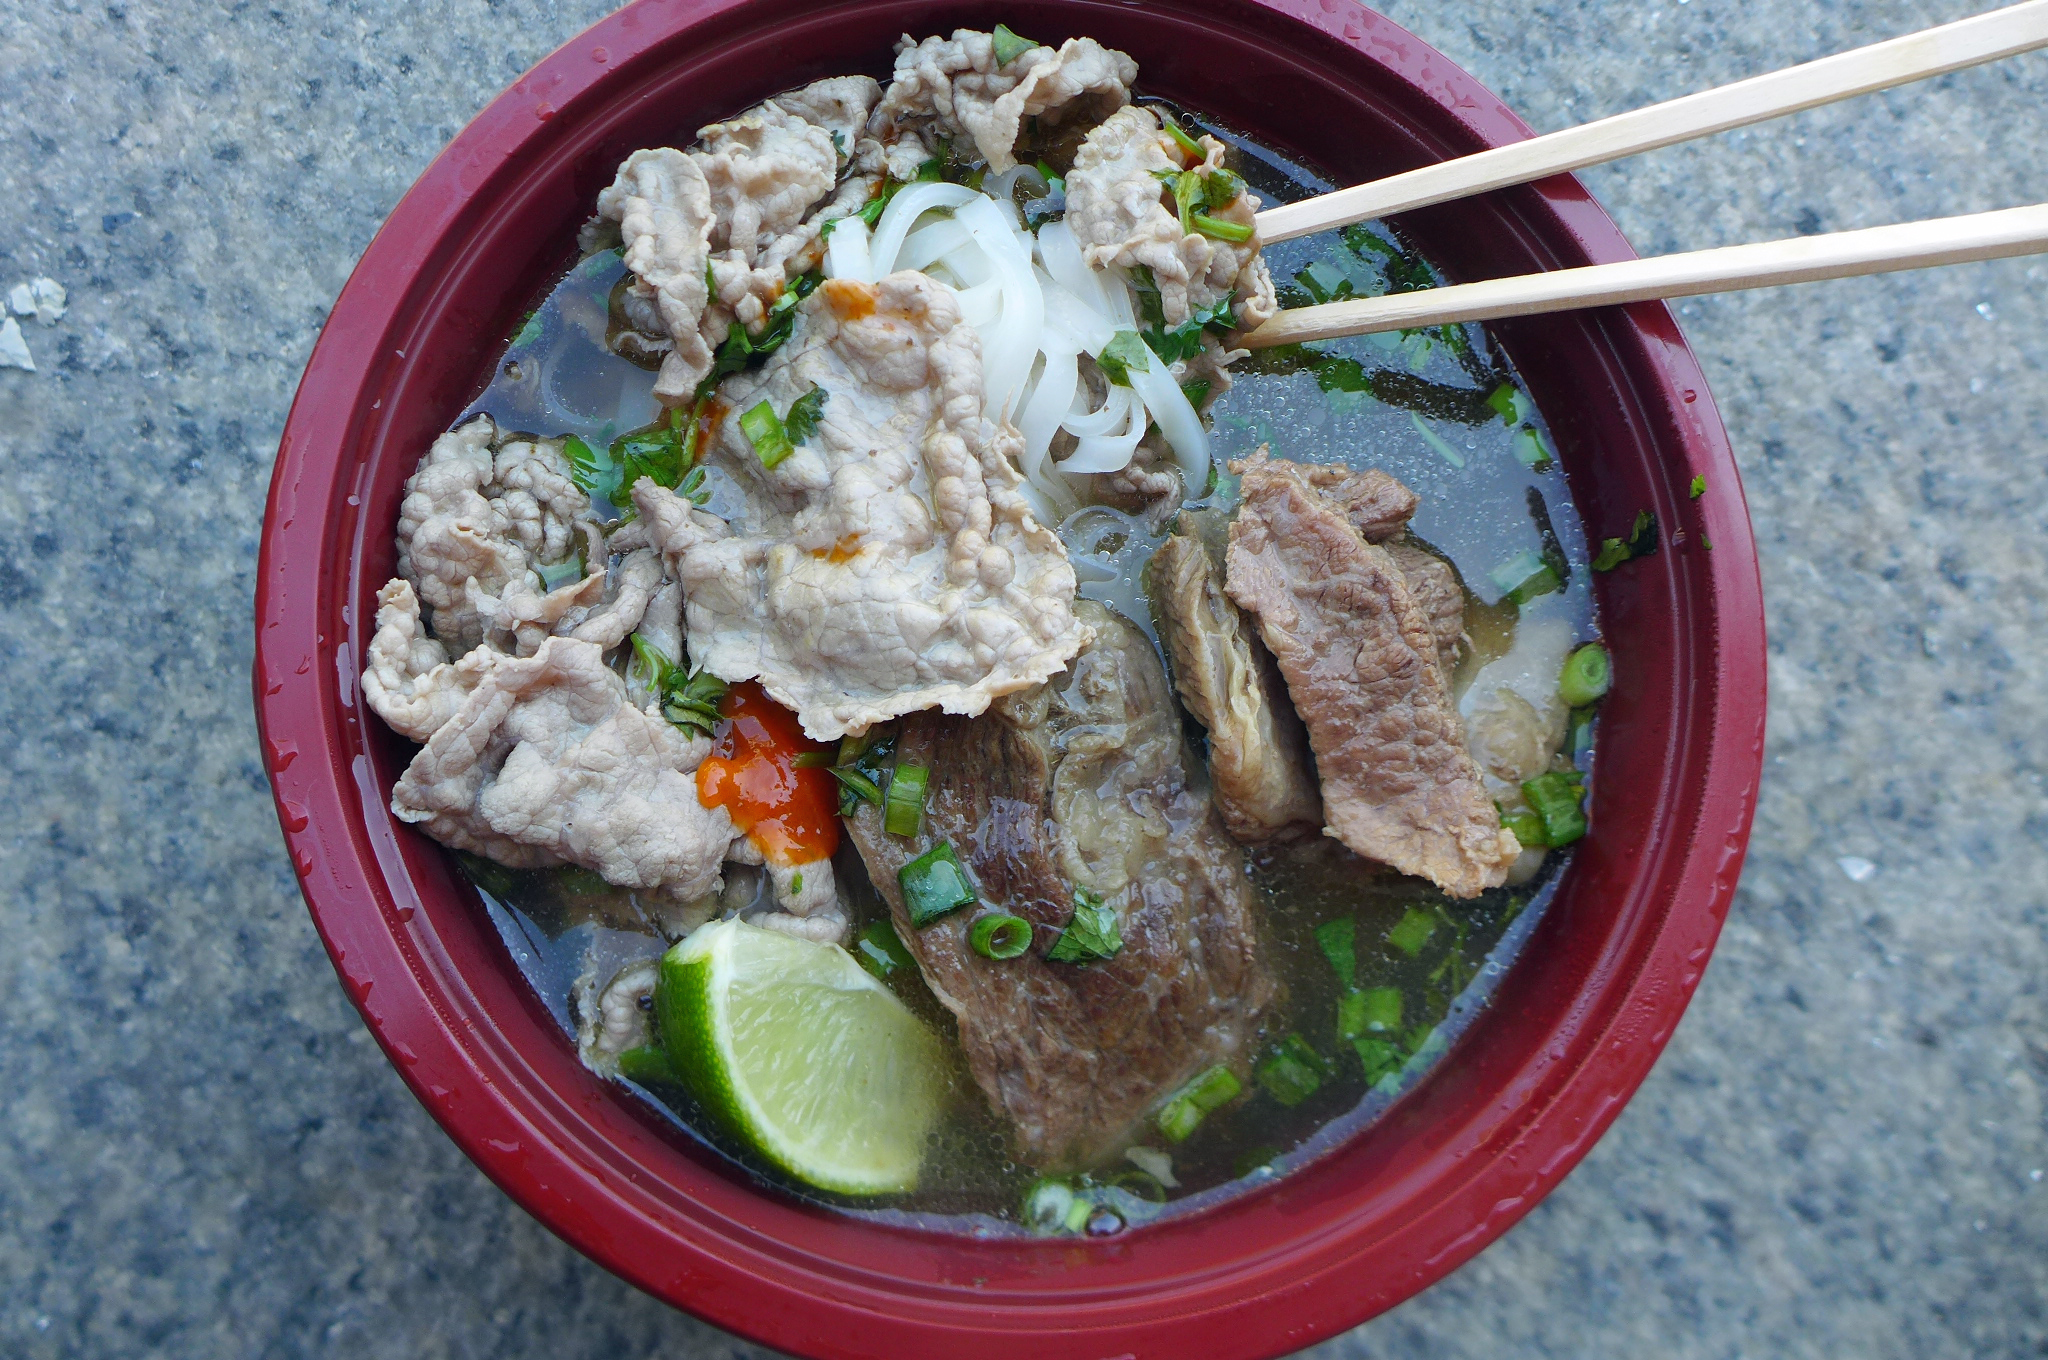 A bowl of soup with two types of beef and chopsticks thrust into the soup.